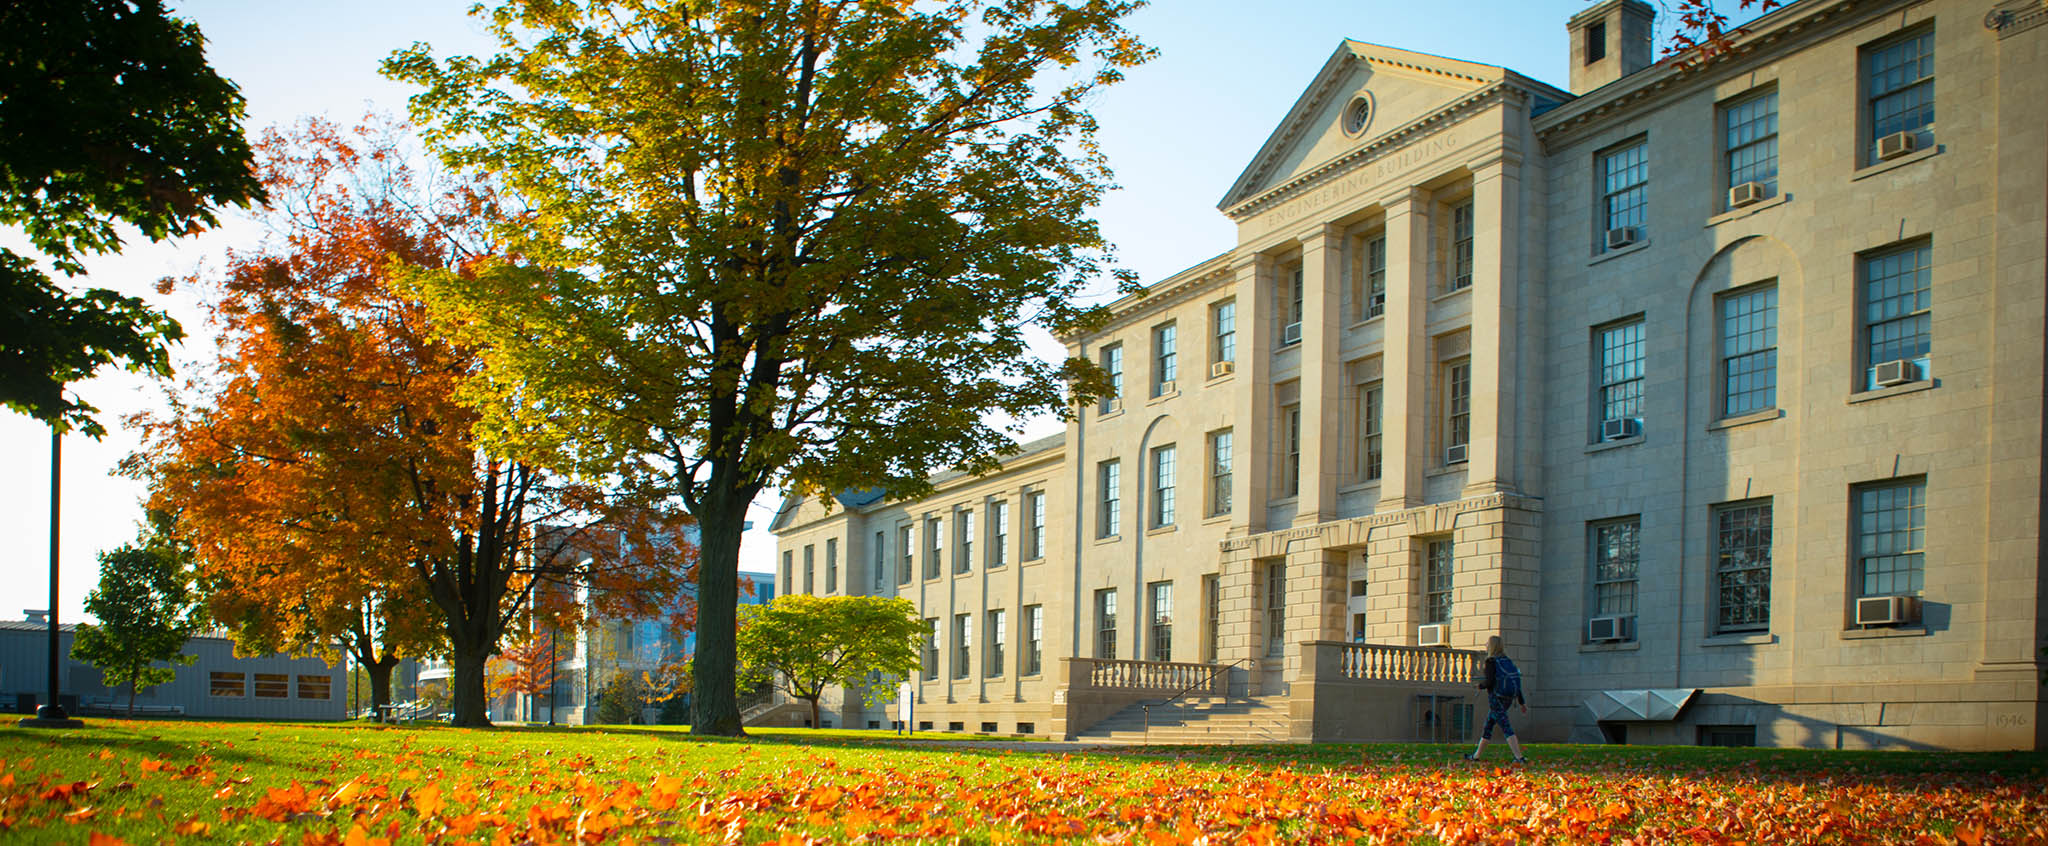 Crosby Hall in the fall